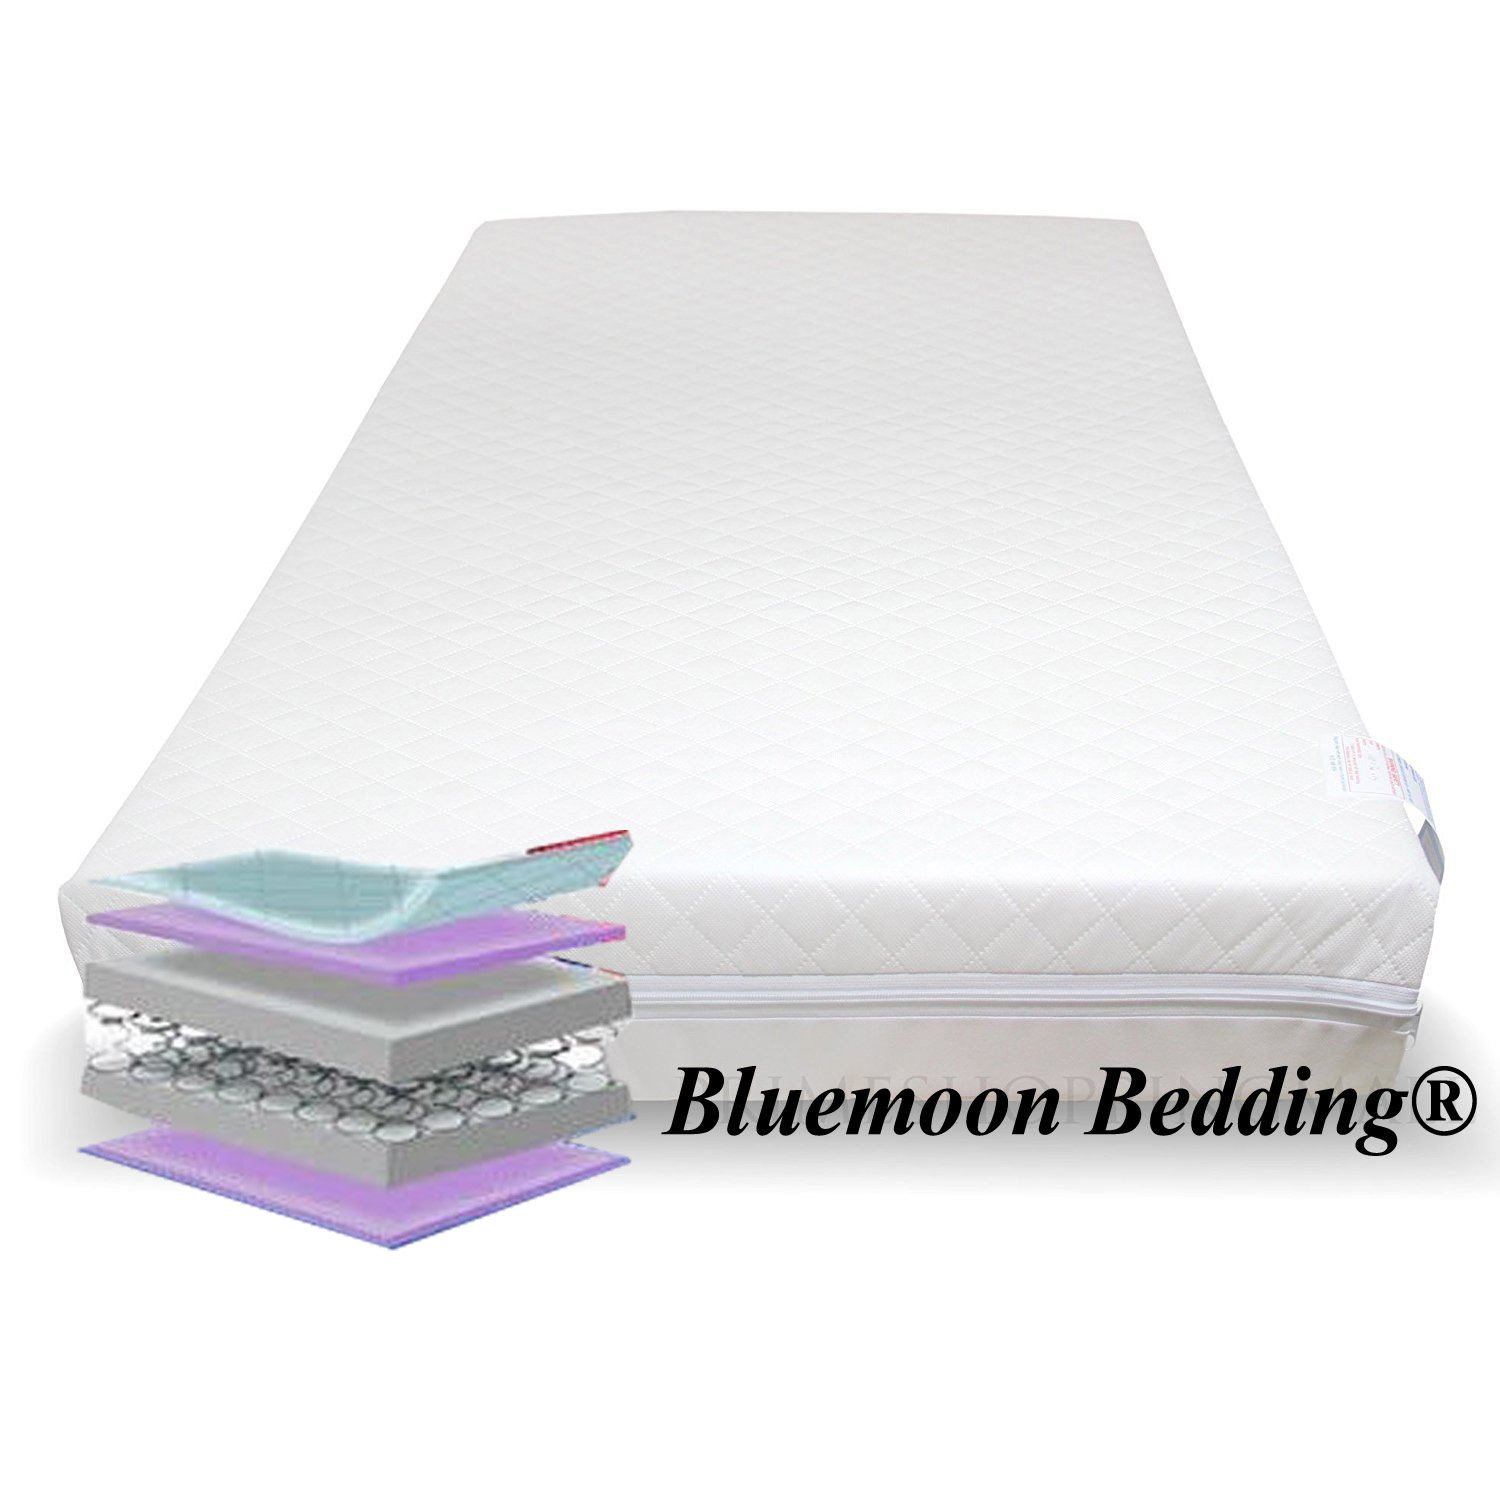 QUILTED SPRING COT BED MATTRESS BABY COT MATTRESSES (110X54X13 CM) Bluemoon Bedding®